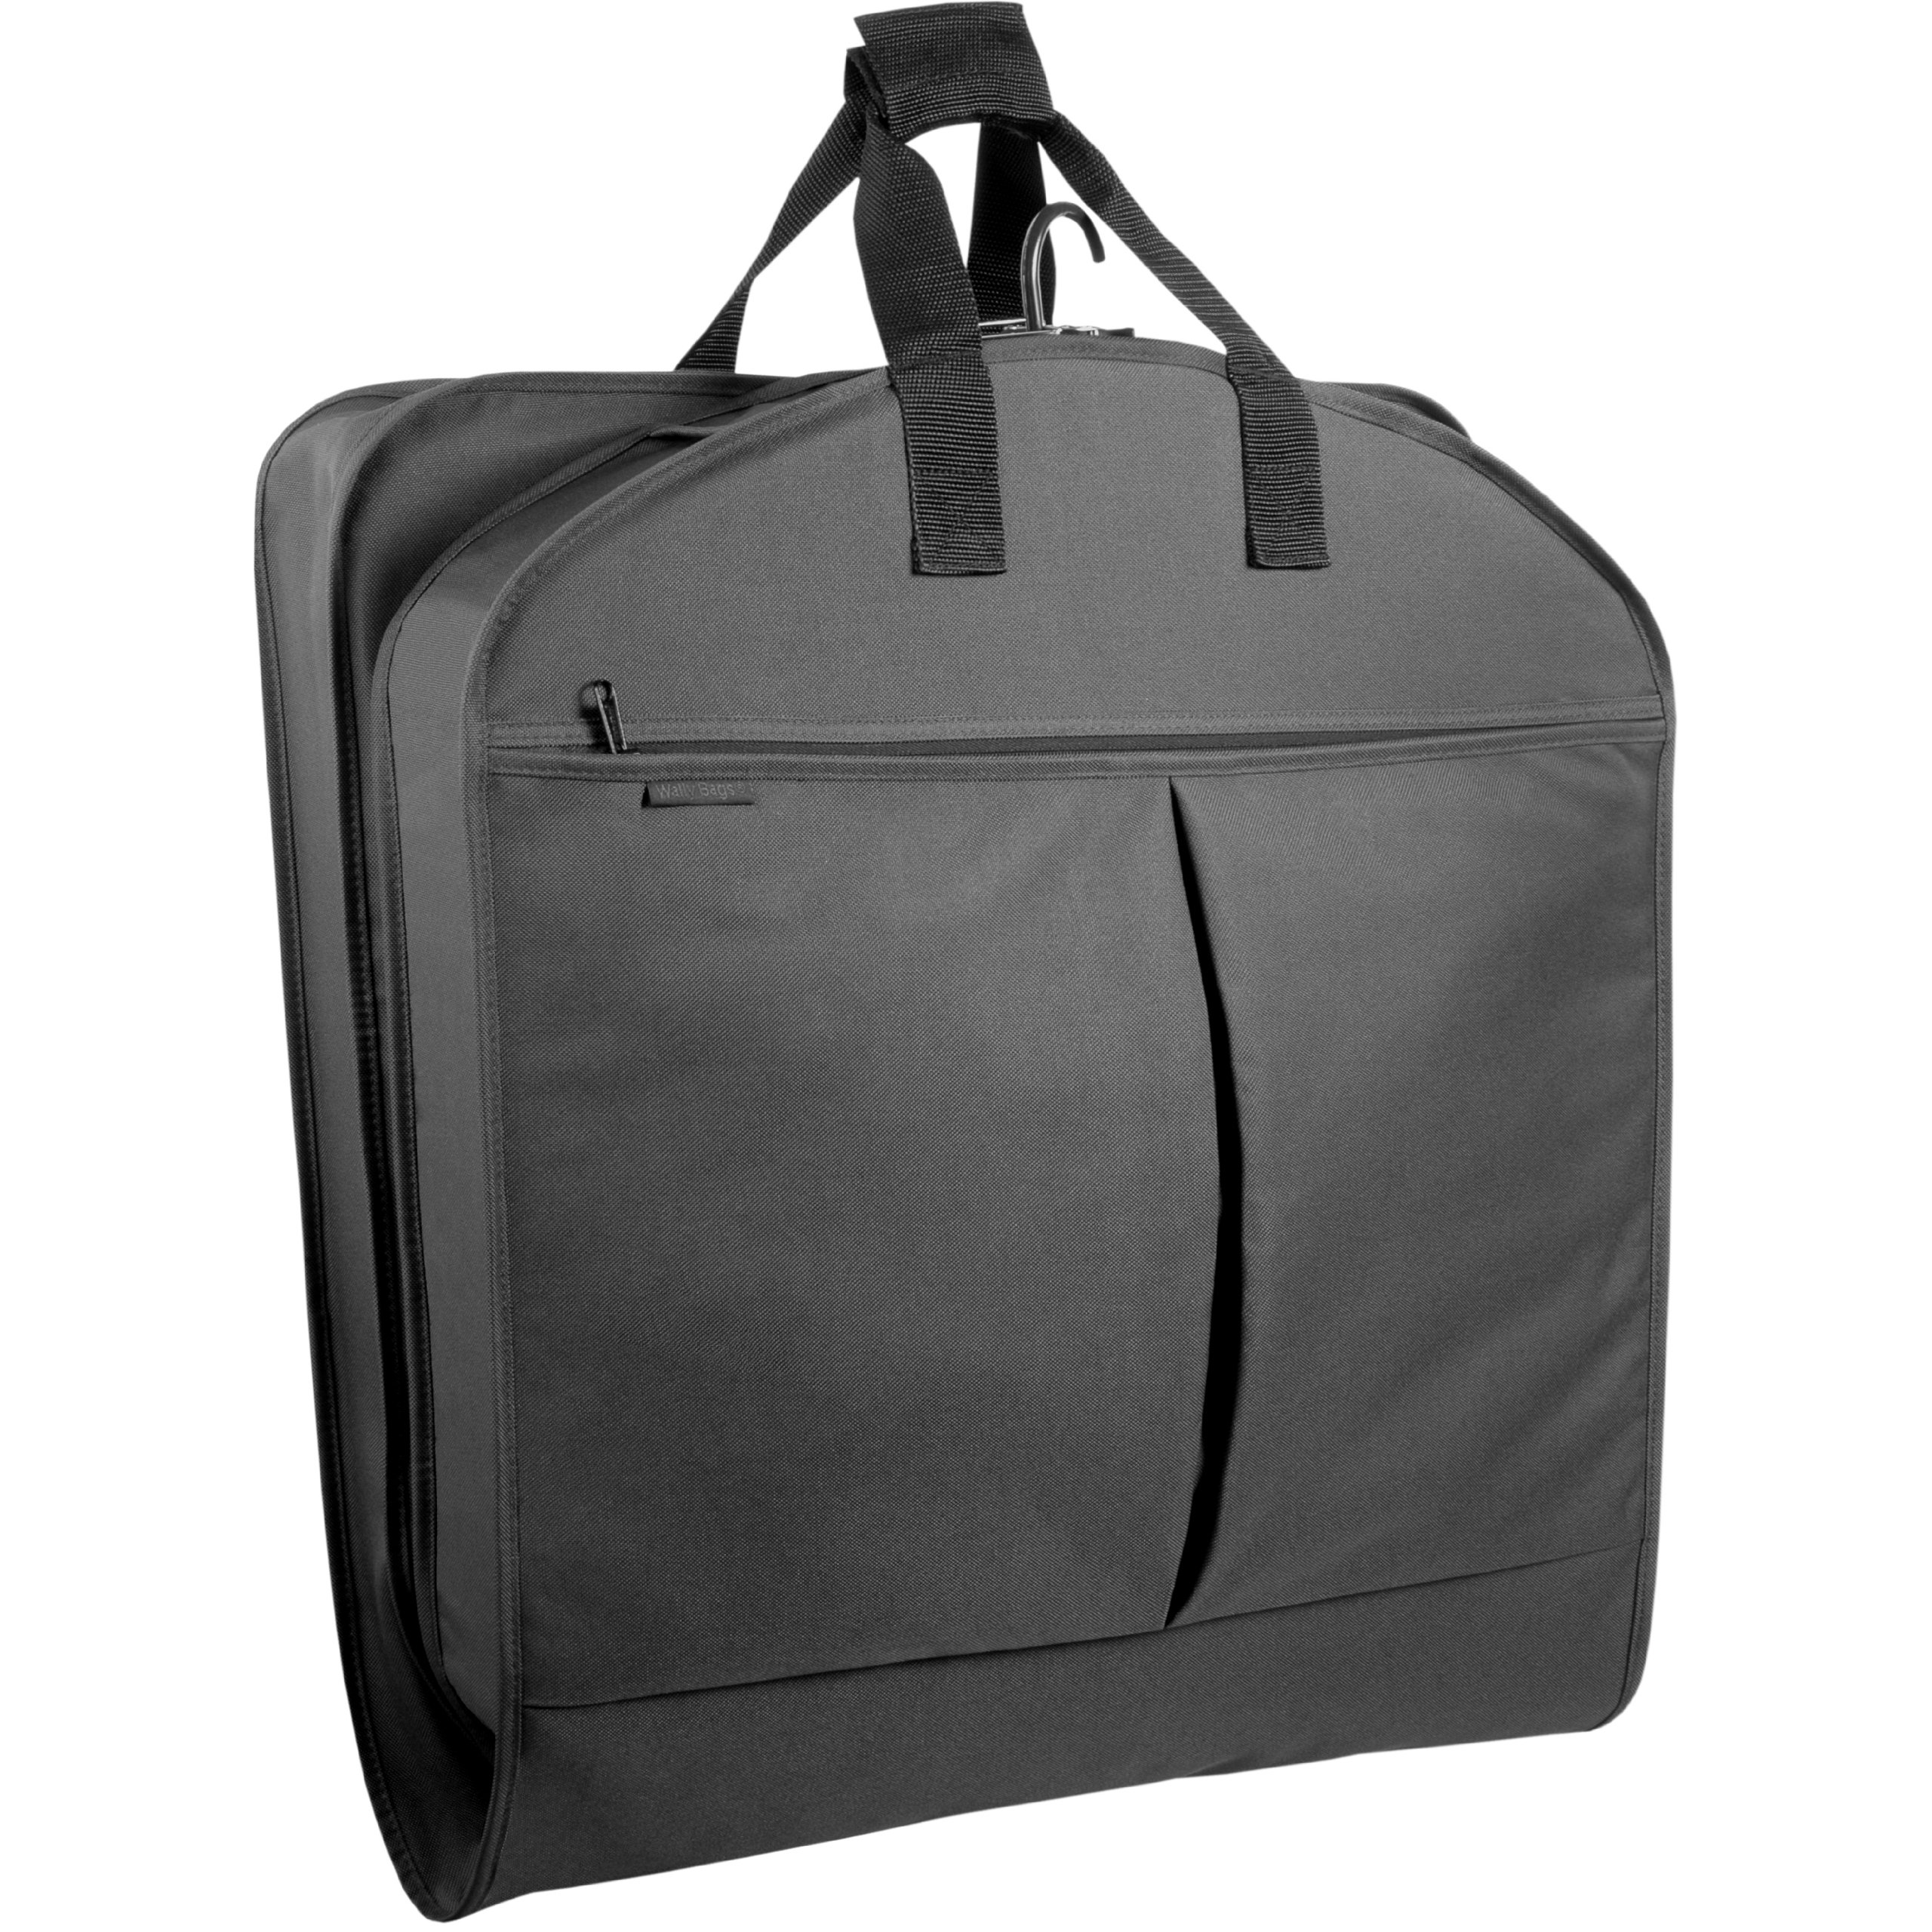 WallyBags 52-inch Dress Length, Carry-On Garment Bag with Two Pockets